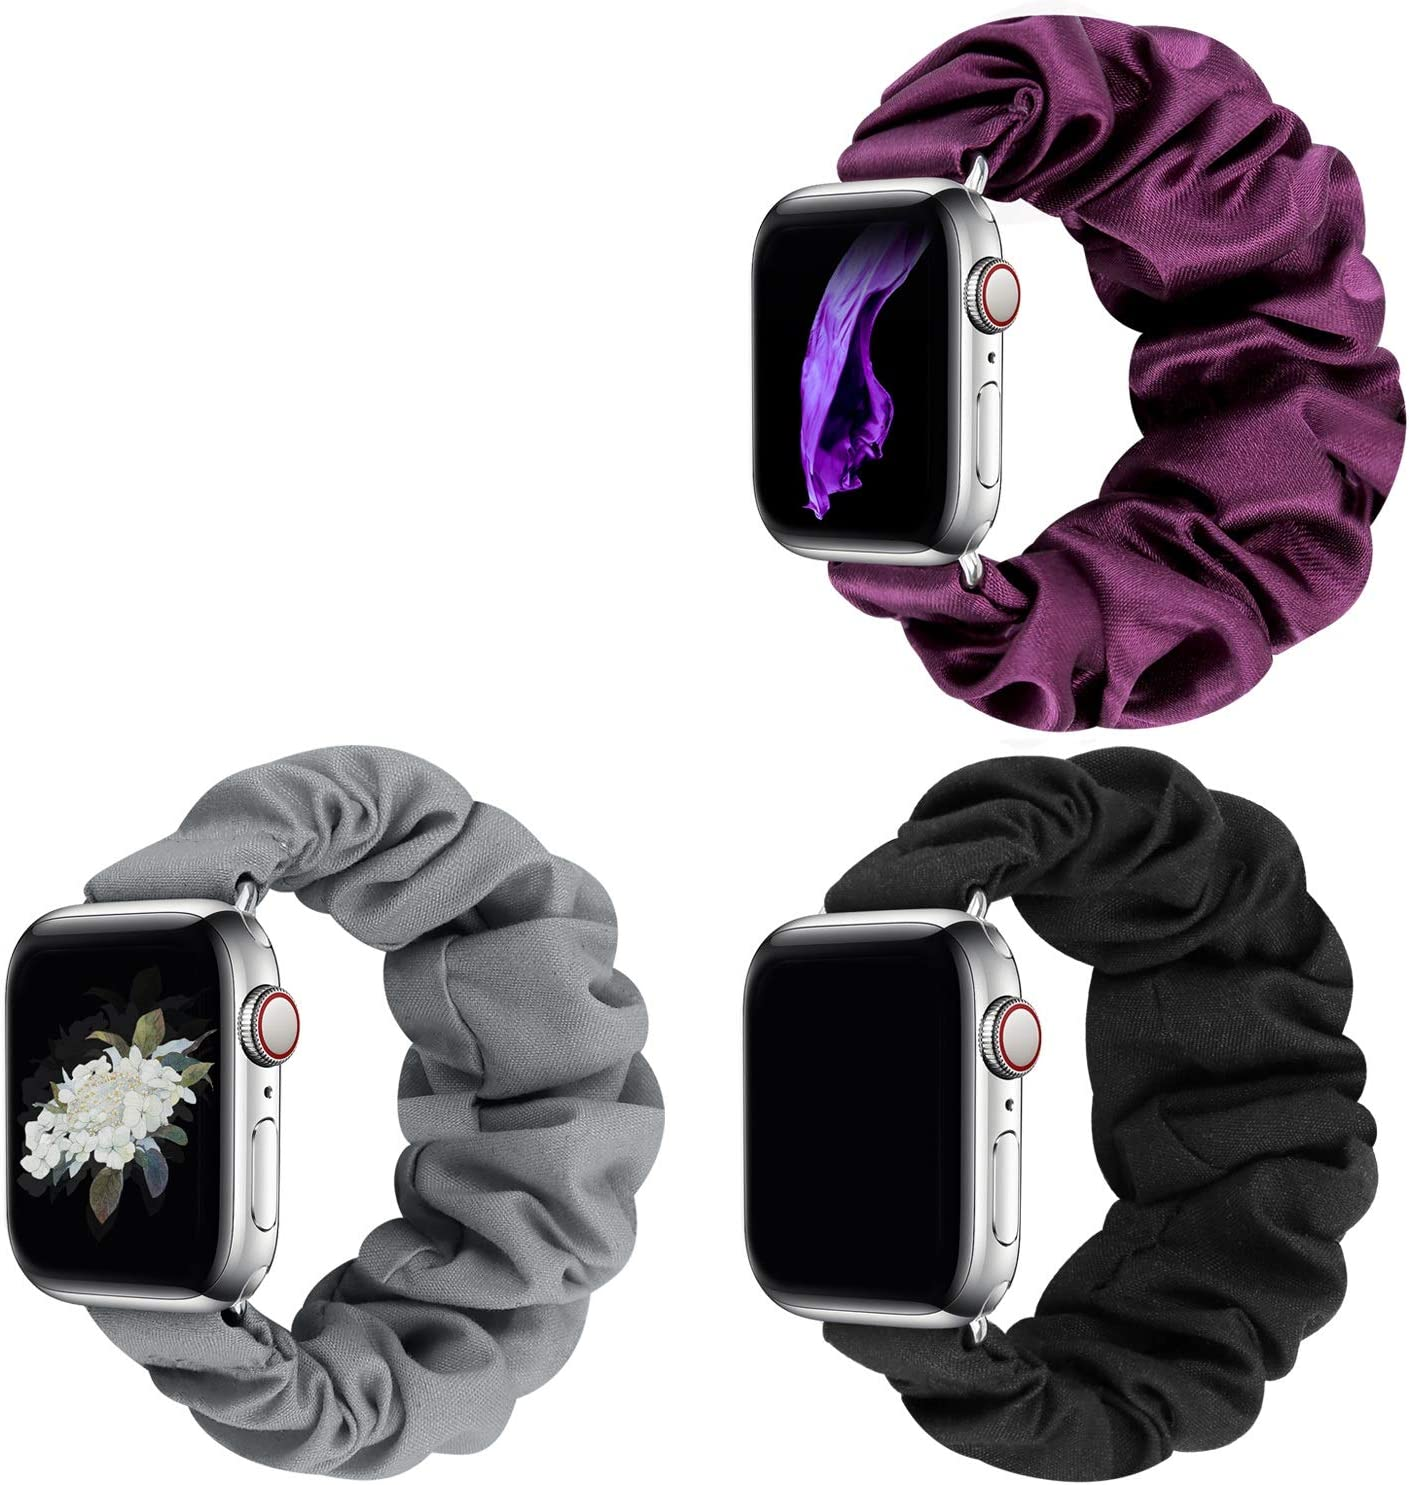 JIELIELE Compatible with Scrunchie Apple Watch Band 38mm 40mm 42mm 44mm, Cute Elastic Wristbands for Women, Stretchy Strap Iwatch Bands for Apple Watch Series SE 6 5 4 3 2 1 (M-38/40 SET-BGSP)